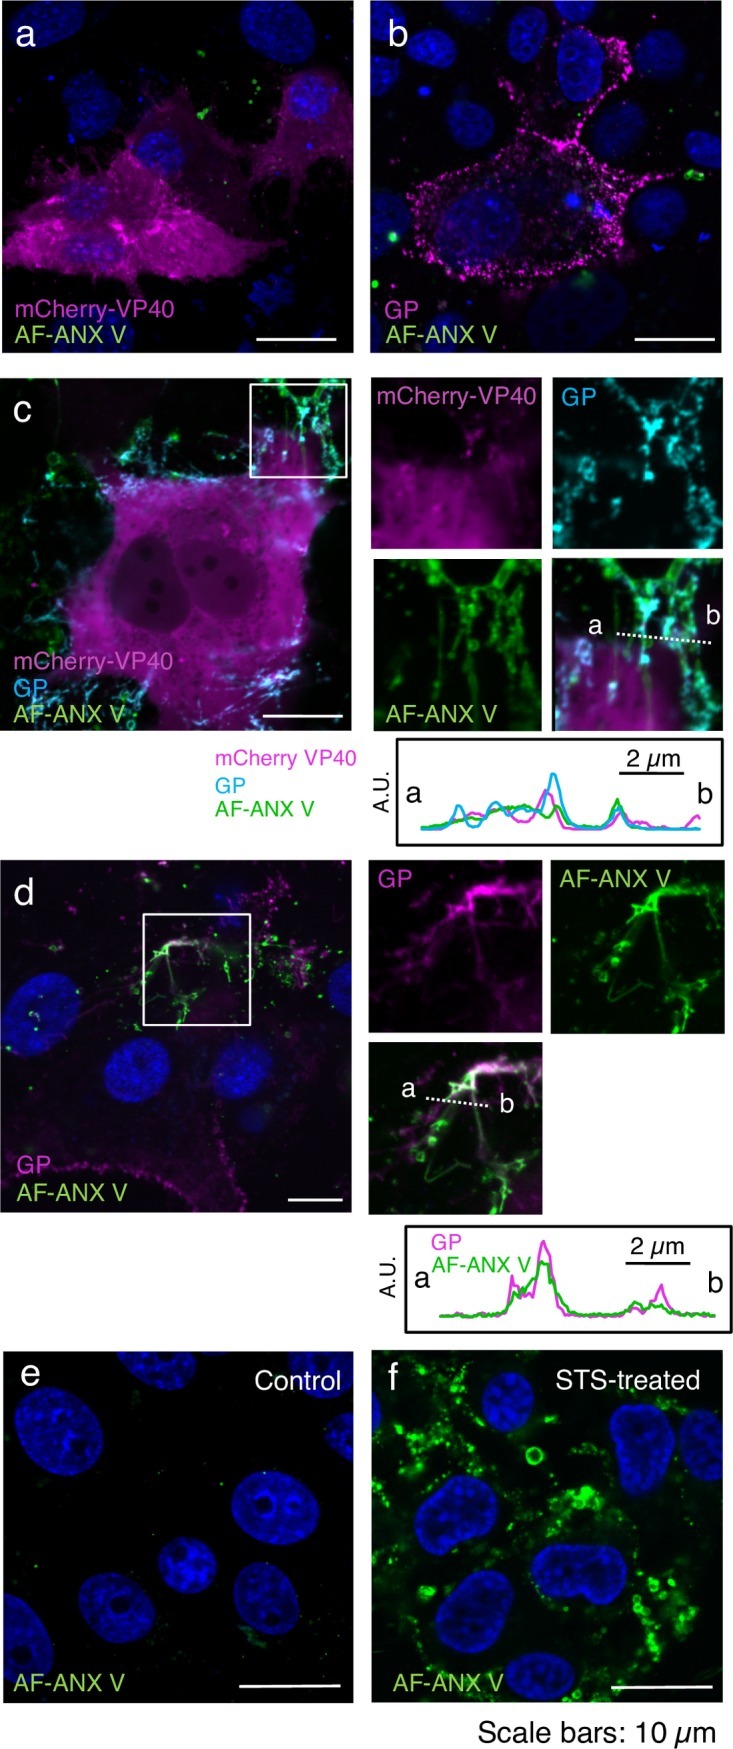 Distribution of extracellular PS in cells expressing EBOV proteins. Vero-E6 cells grown on <t>35-mm</t> glass bottom dishes were transfected with the expression plasmids of mCherry-VP40 and wtVP40 at a ratio of 1:5 (a), GP alone (b), mCherry-VP40 and wtVP40 with GP (c), or wtVP40 and GP (d). At 48 h.p.t., the cells were harvested followed by AF-ANX V staining. For detection of GP, the cells were incubated in the medium containing the anti-GP antibody, followed by incubation with Alexa Fluor 647-conjugated secondary antibody. After being washed with medium and ANX V binging buffer, the cells were treated with AF-ANX V. After washing again, the AF-ANX V signal (green) and EBOV proteins were observed by using a confocal microscope. Individual viral proteins are shown in magenta (a, b, and d). In panel (c), mCherry-VP40 and GP are shown in magenta and cyan, respectively. As a control, a backbone plasmid was transfected (e). Panel (f) represents Vero-E6 cells treated with 1 μM STS for 6 h. The nuclei (blue) were counterstained with Hoechst 33342. Insets show the boxed areas. The plots indicate the individual fluorescence intensity along each of the corresponding lines. A.U.; arbitrary unit. Scale bars in the large panels: 10 μm.